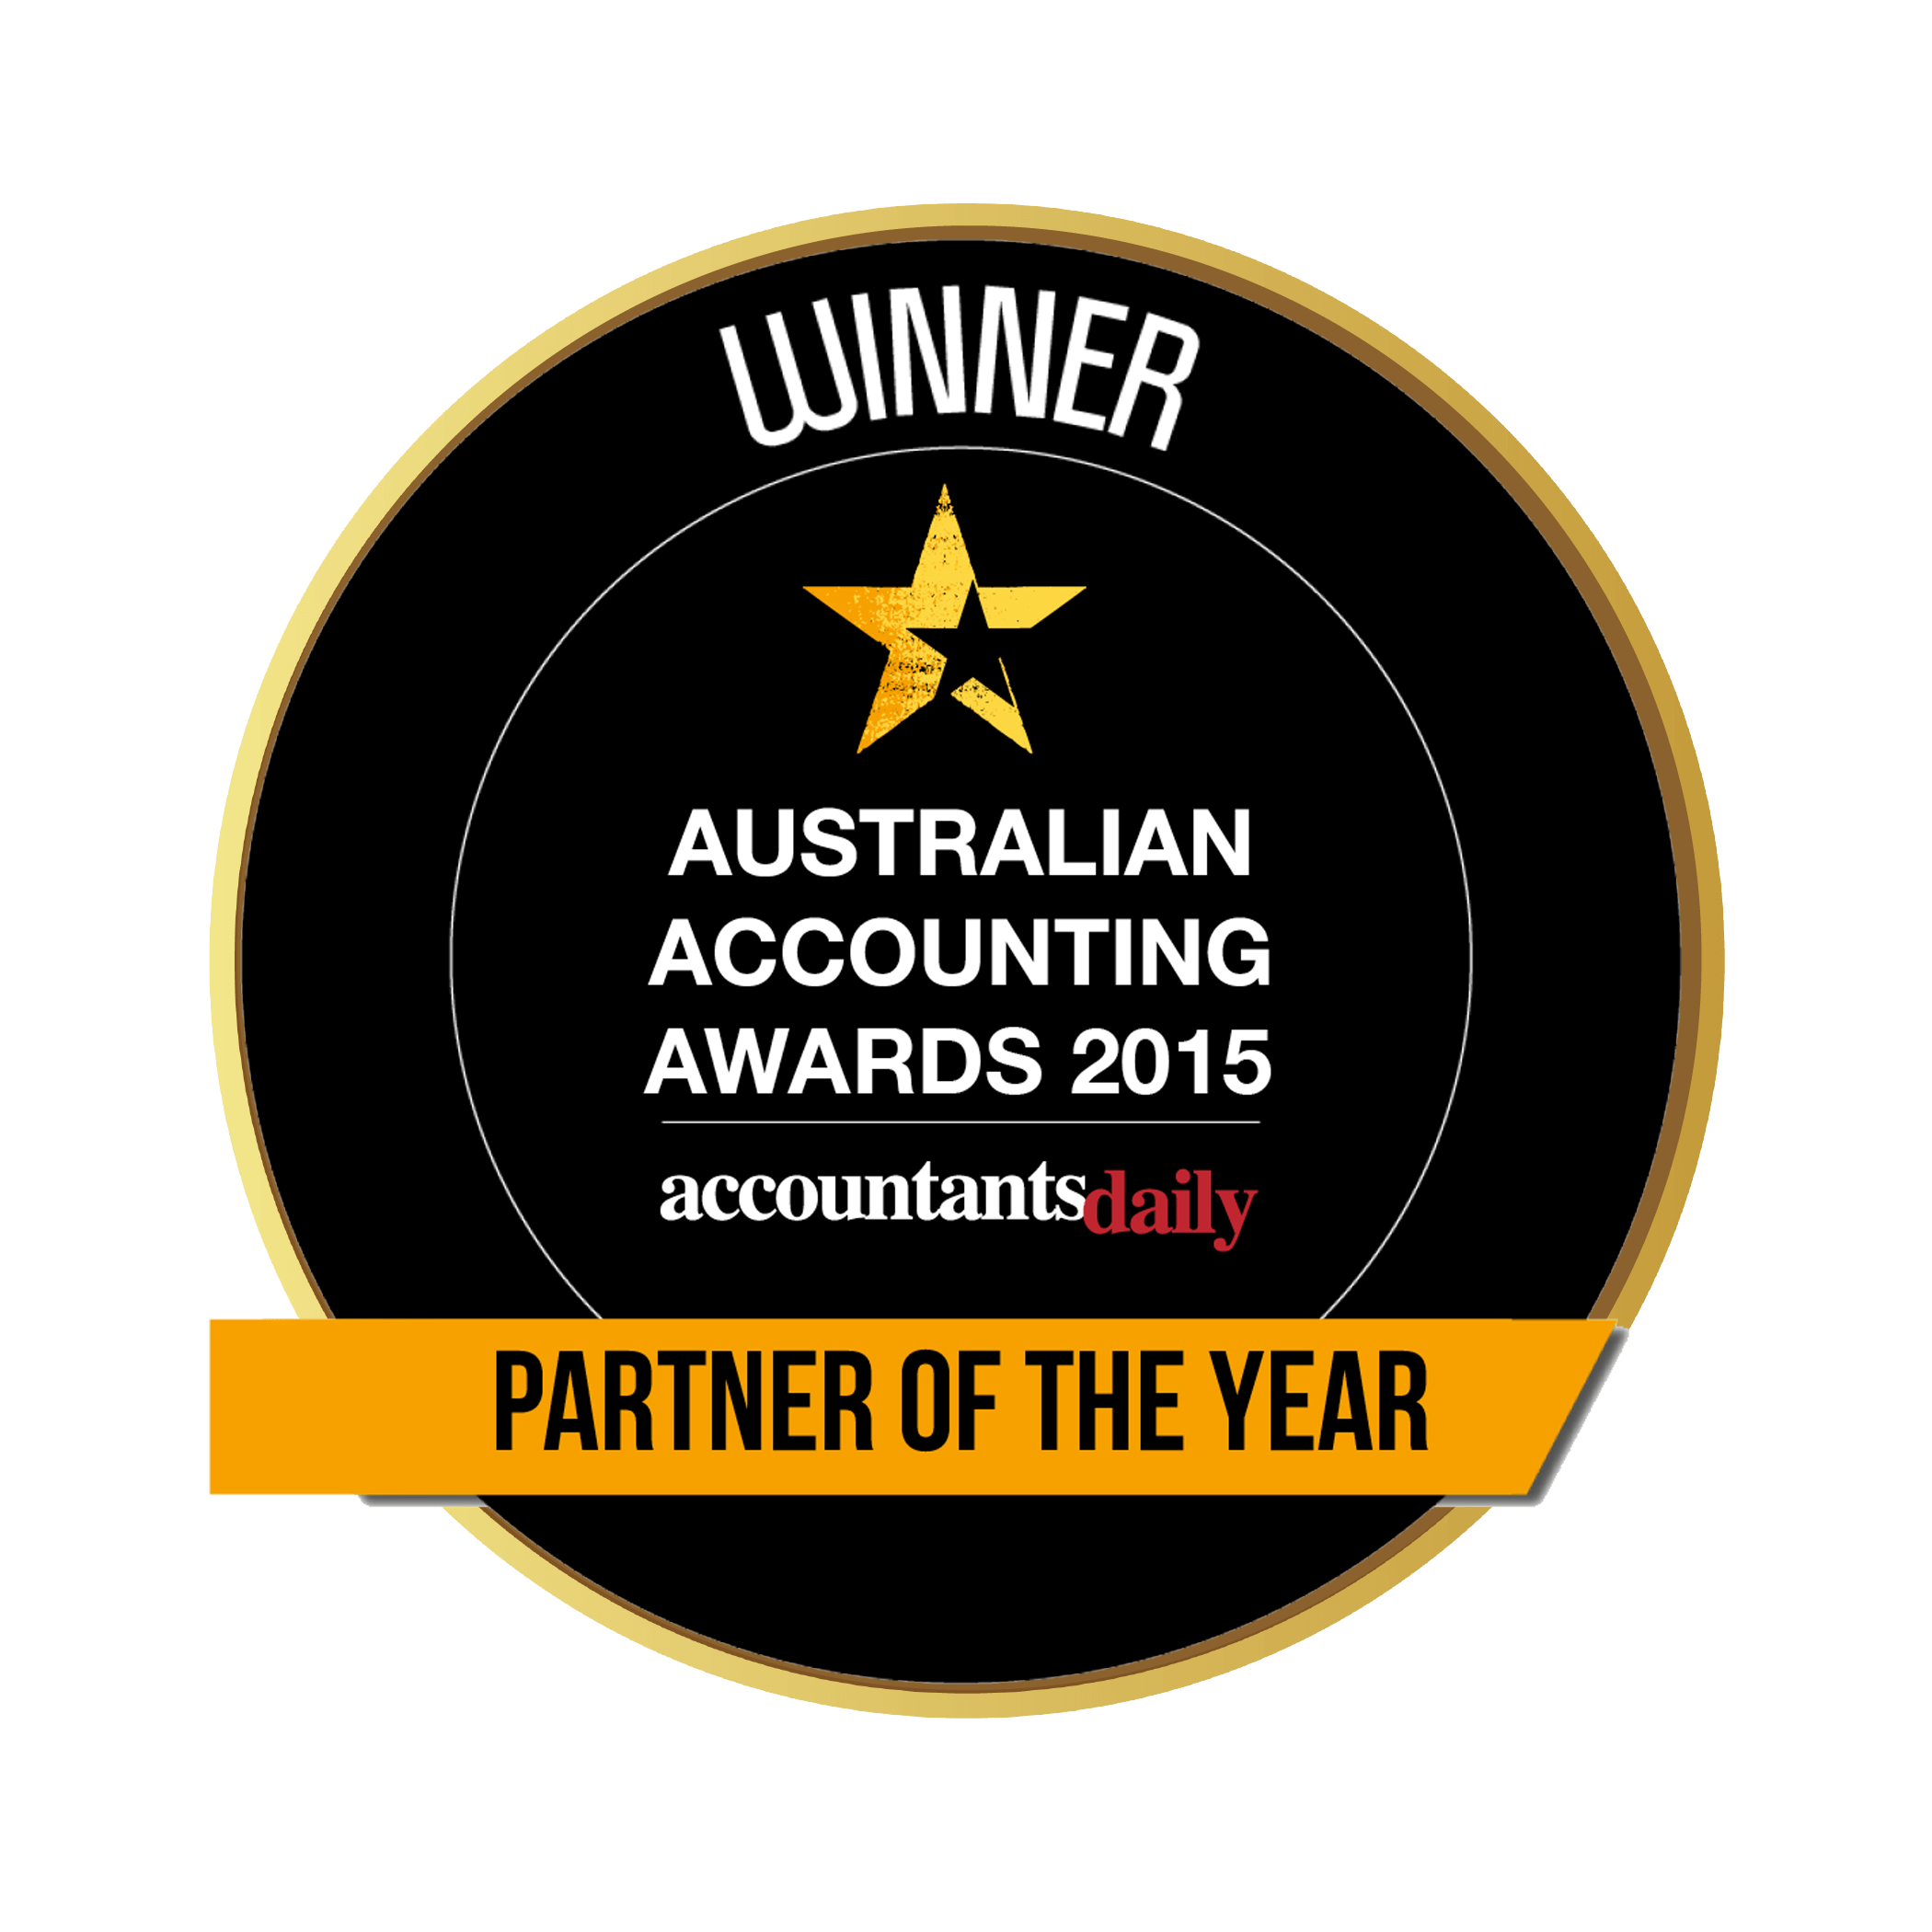 Aust Accounting Awards 2015_PARTNER OF THE YEAR